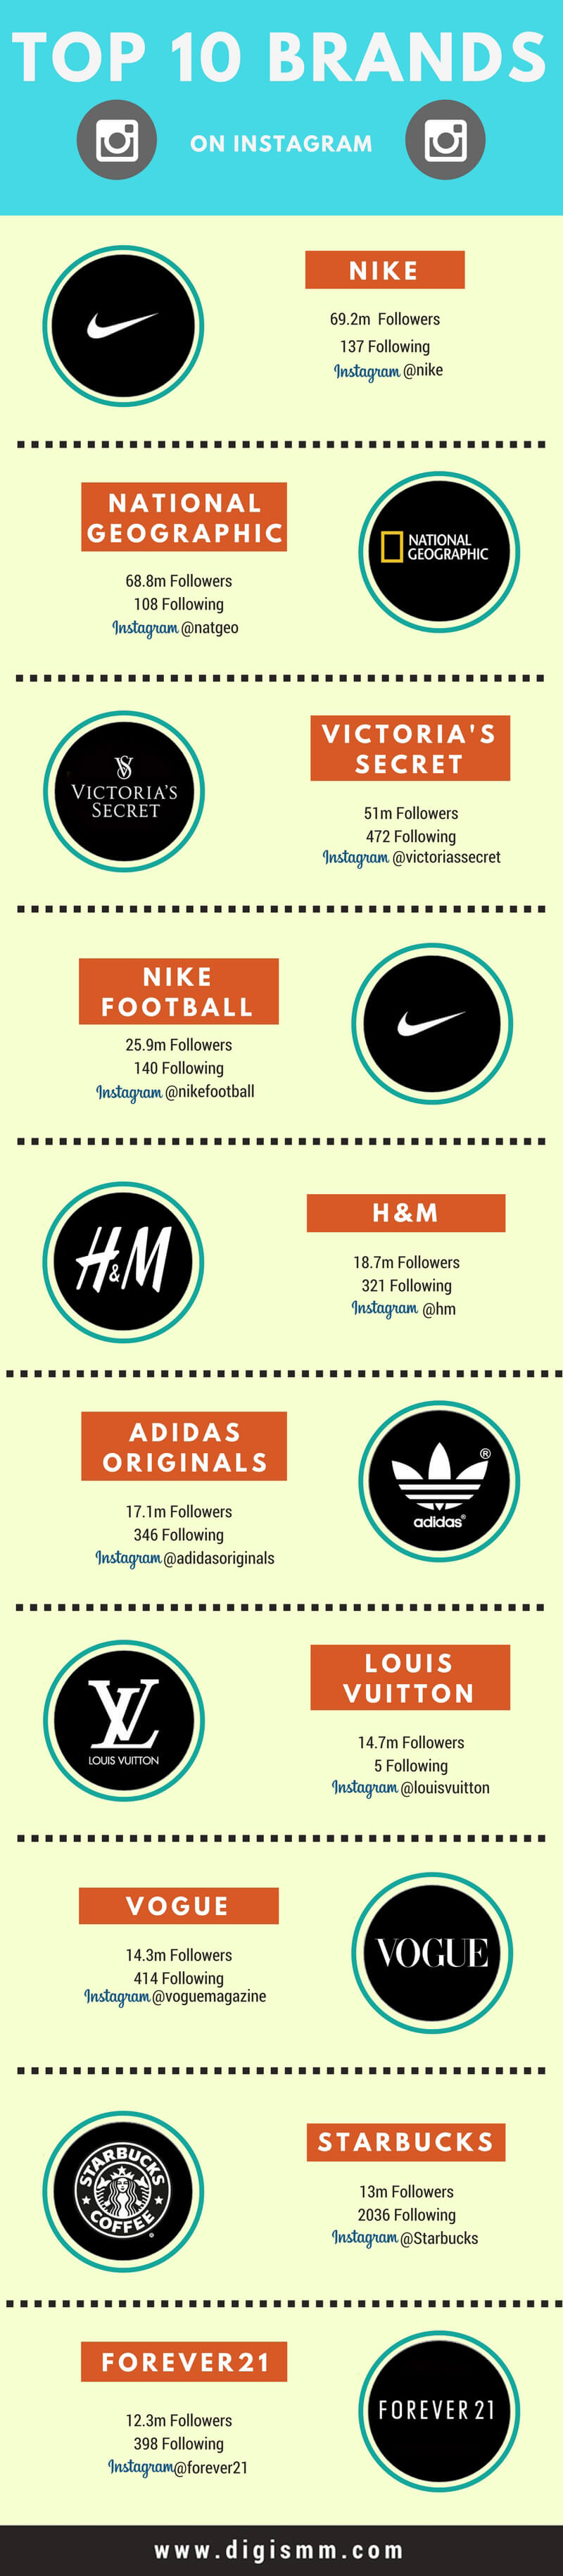 Top 10 Brands On Instagram in 2017